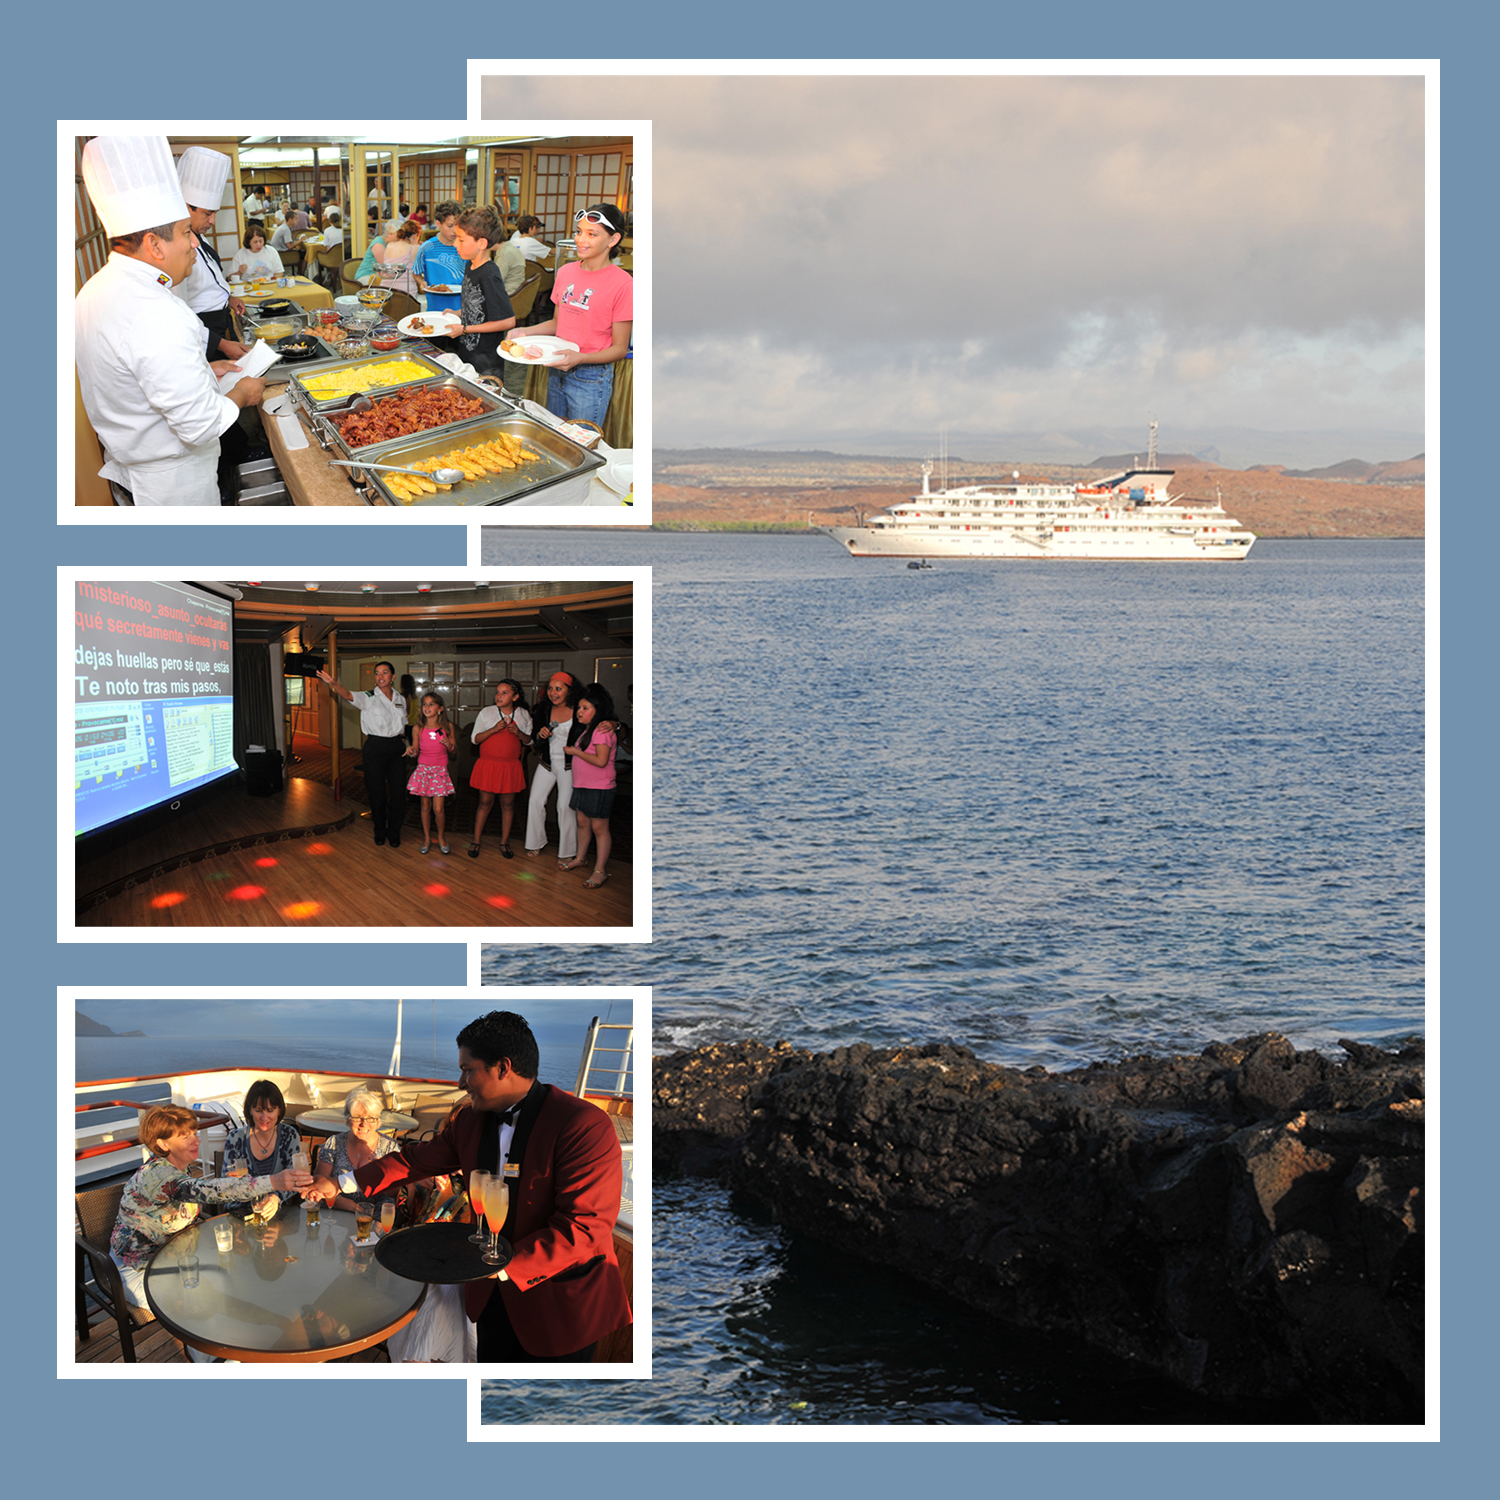 galapagos-island-cruises-picture-collage